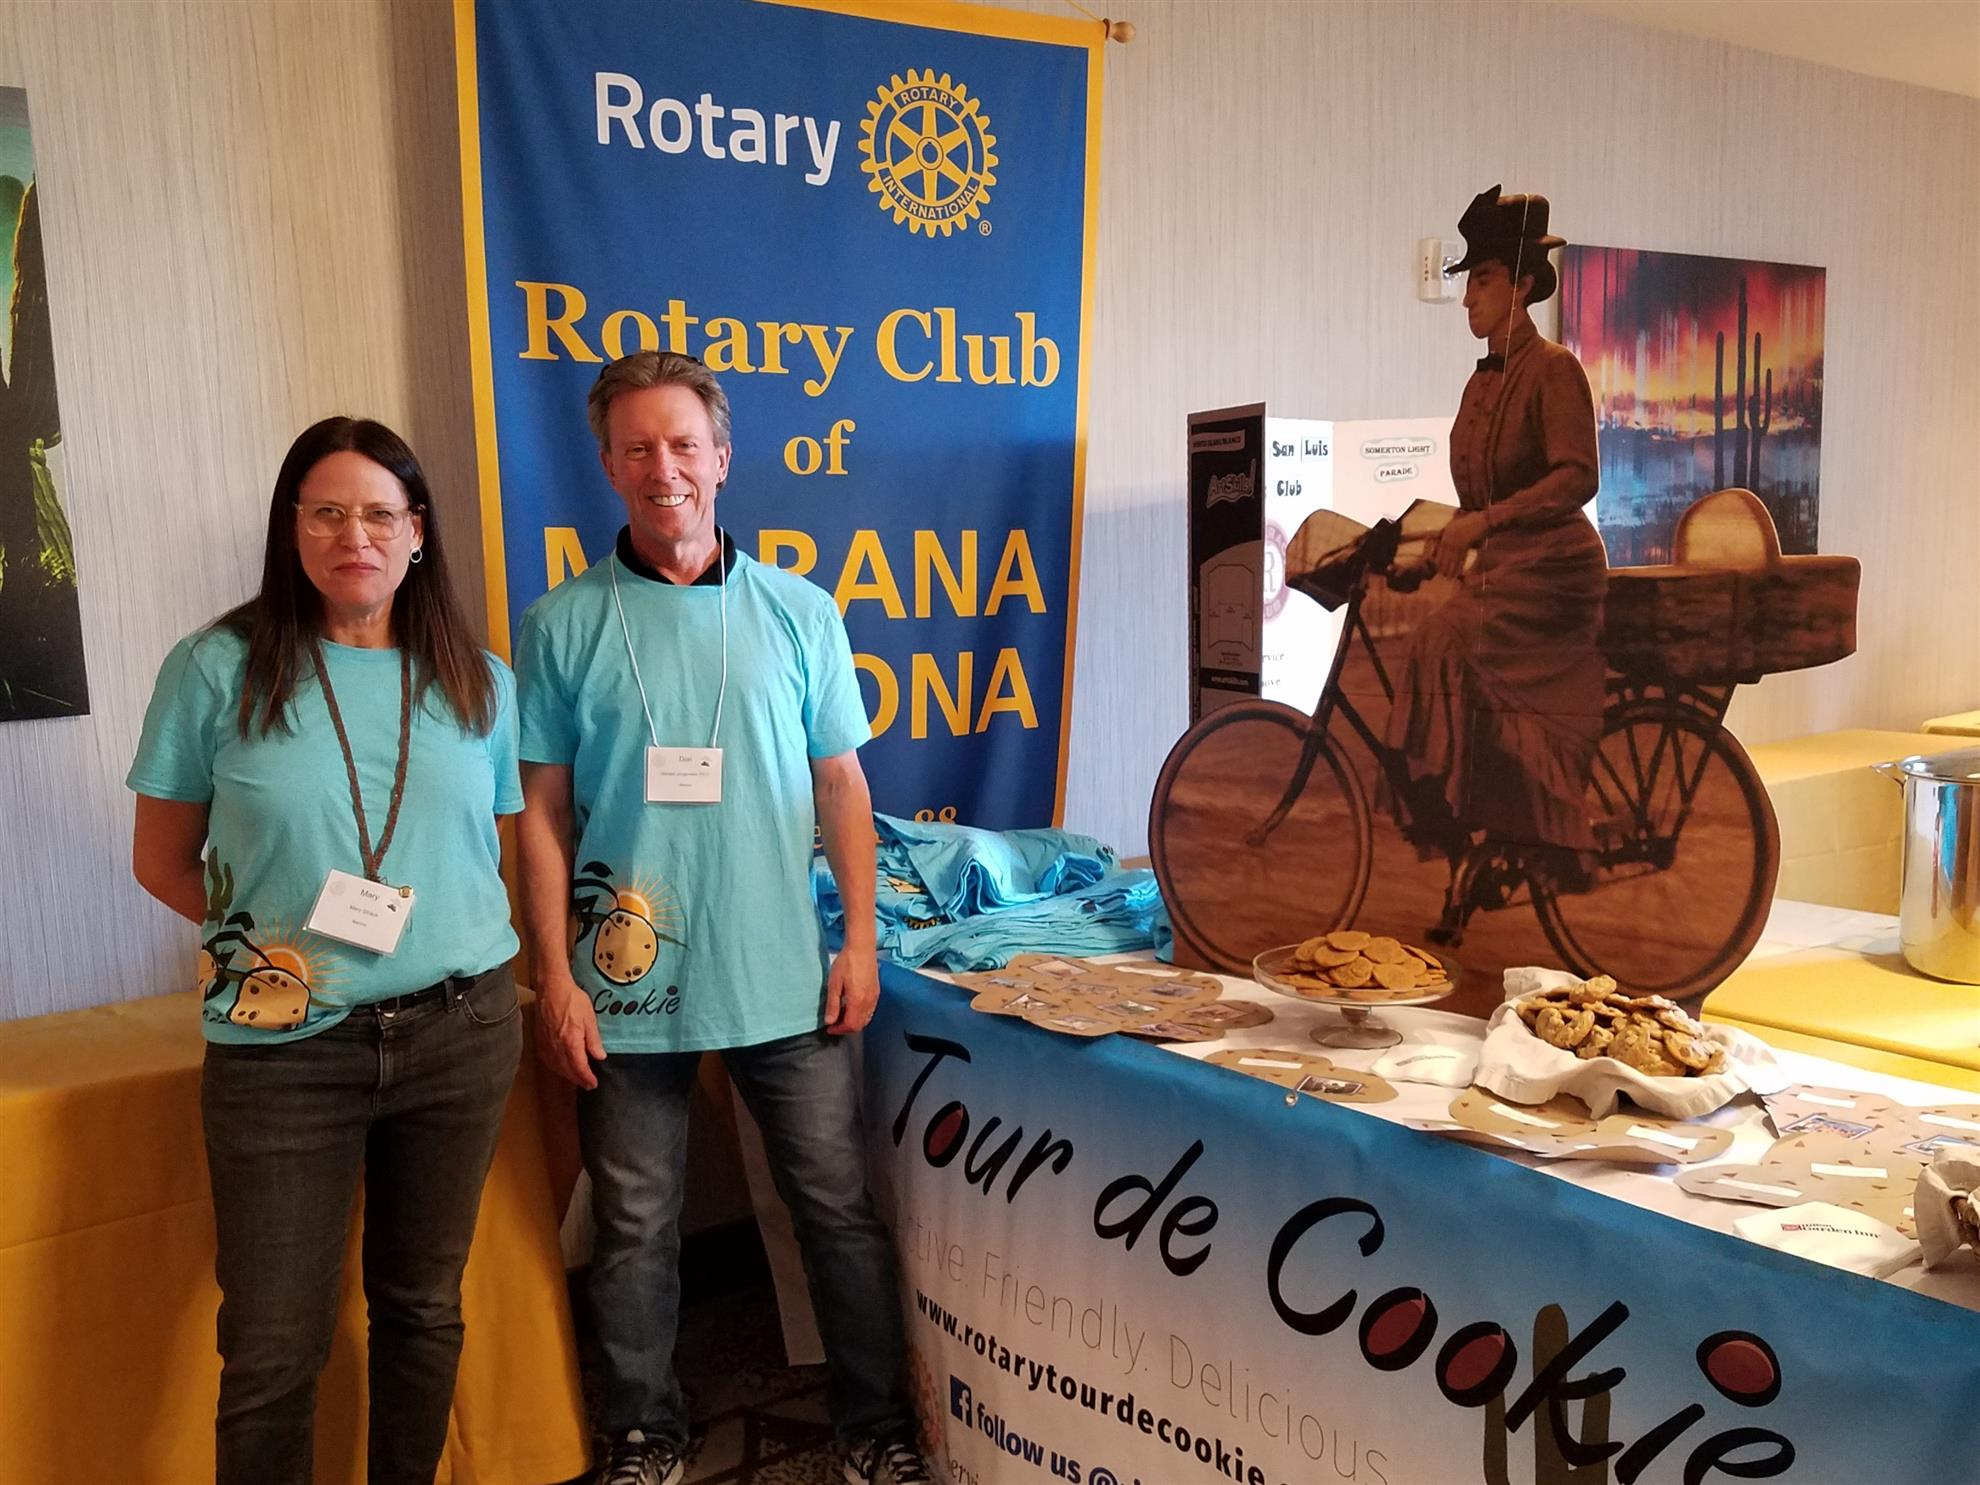 Stories rotary club of marana mary don and randy gave out cookies at the district conference both were warmly received thank you to mary and deb hume randys spouse for baking 1betcityfo Gallery